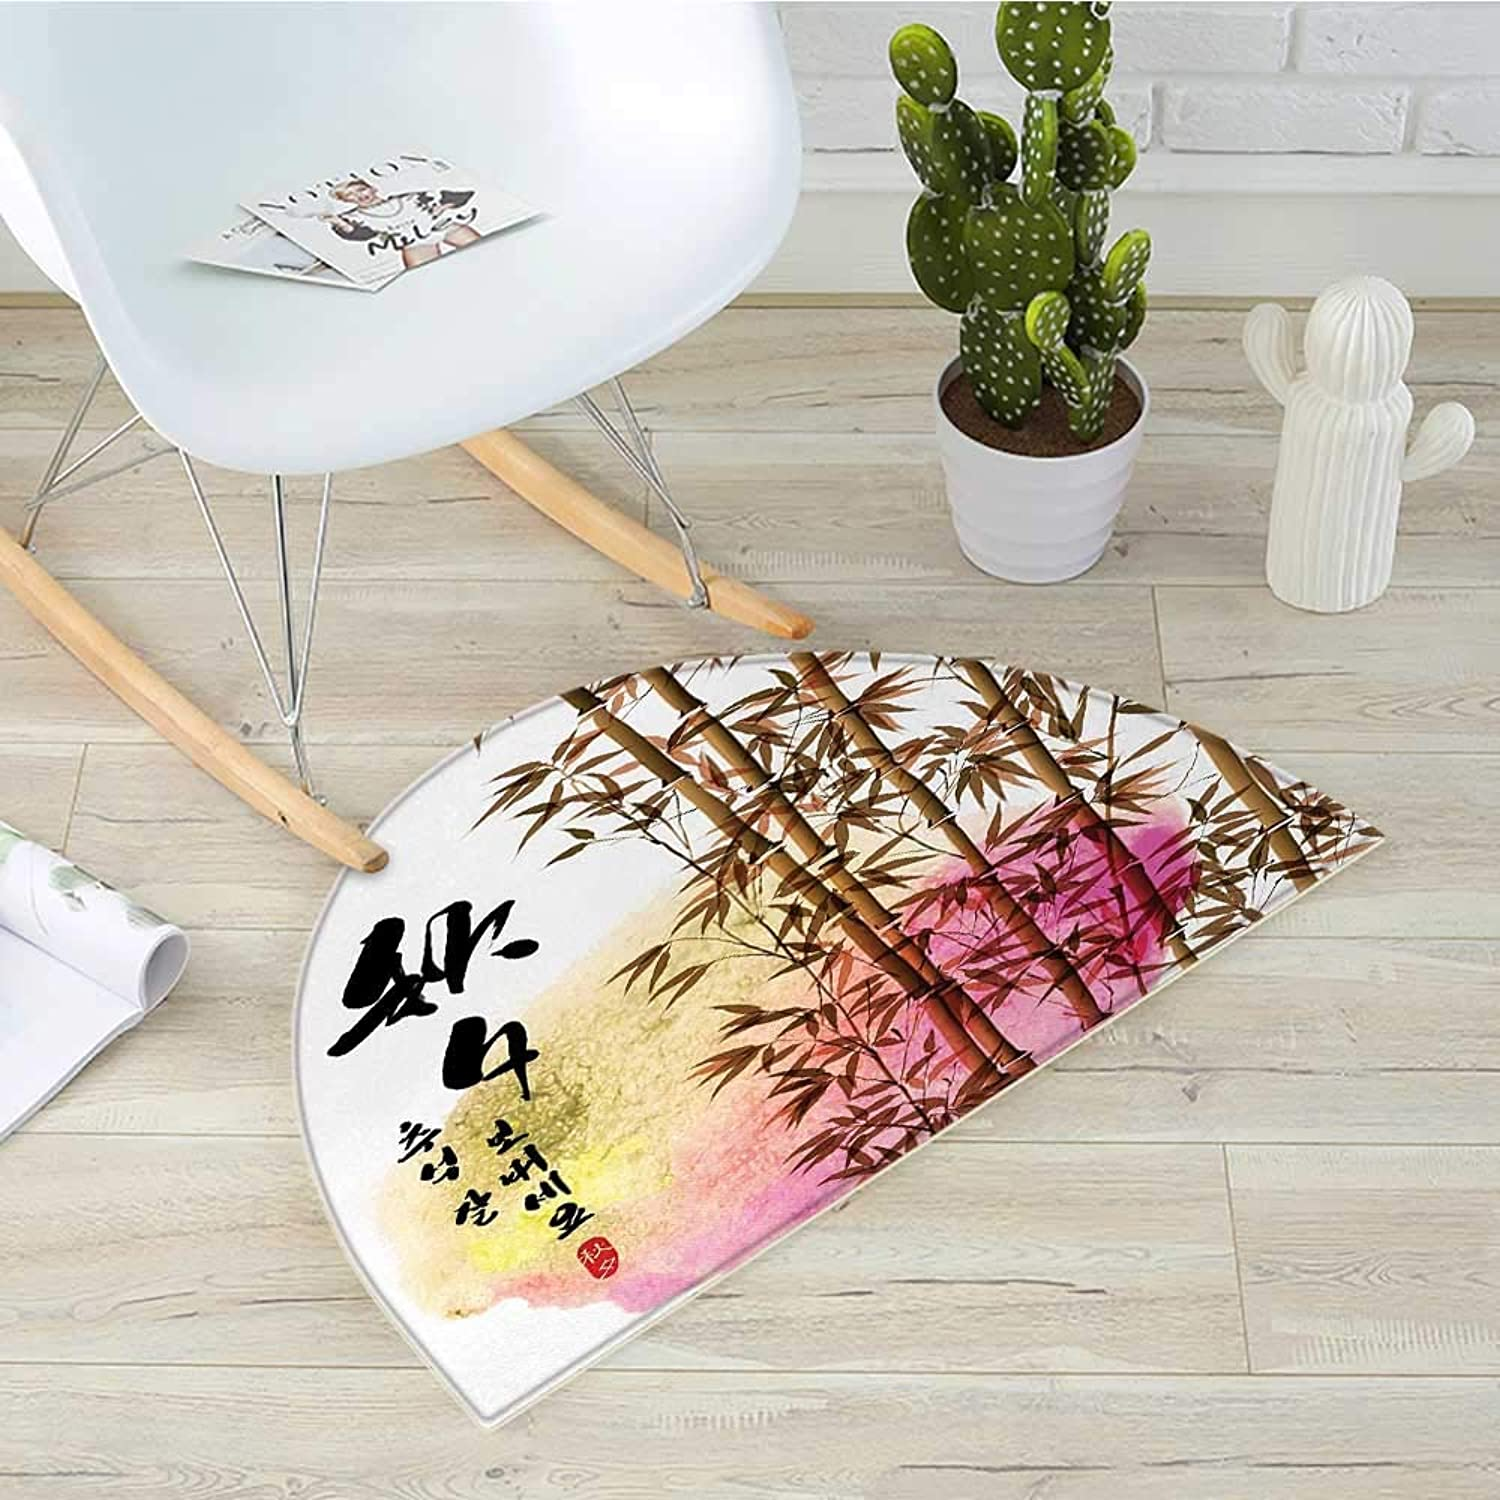 Bamboo Half Round Door mats Bamboo Painting with Japanese Words in Mid Autumn Festival Giving Day Harvest Artsy Work Bathroom Mat H 39.3  xD 59  Multi